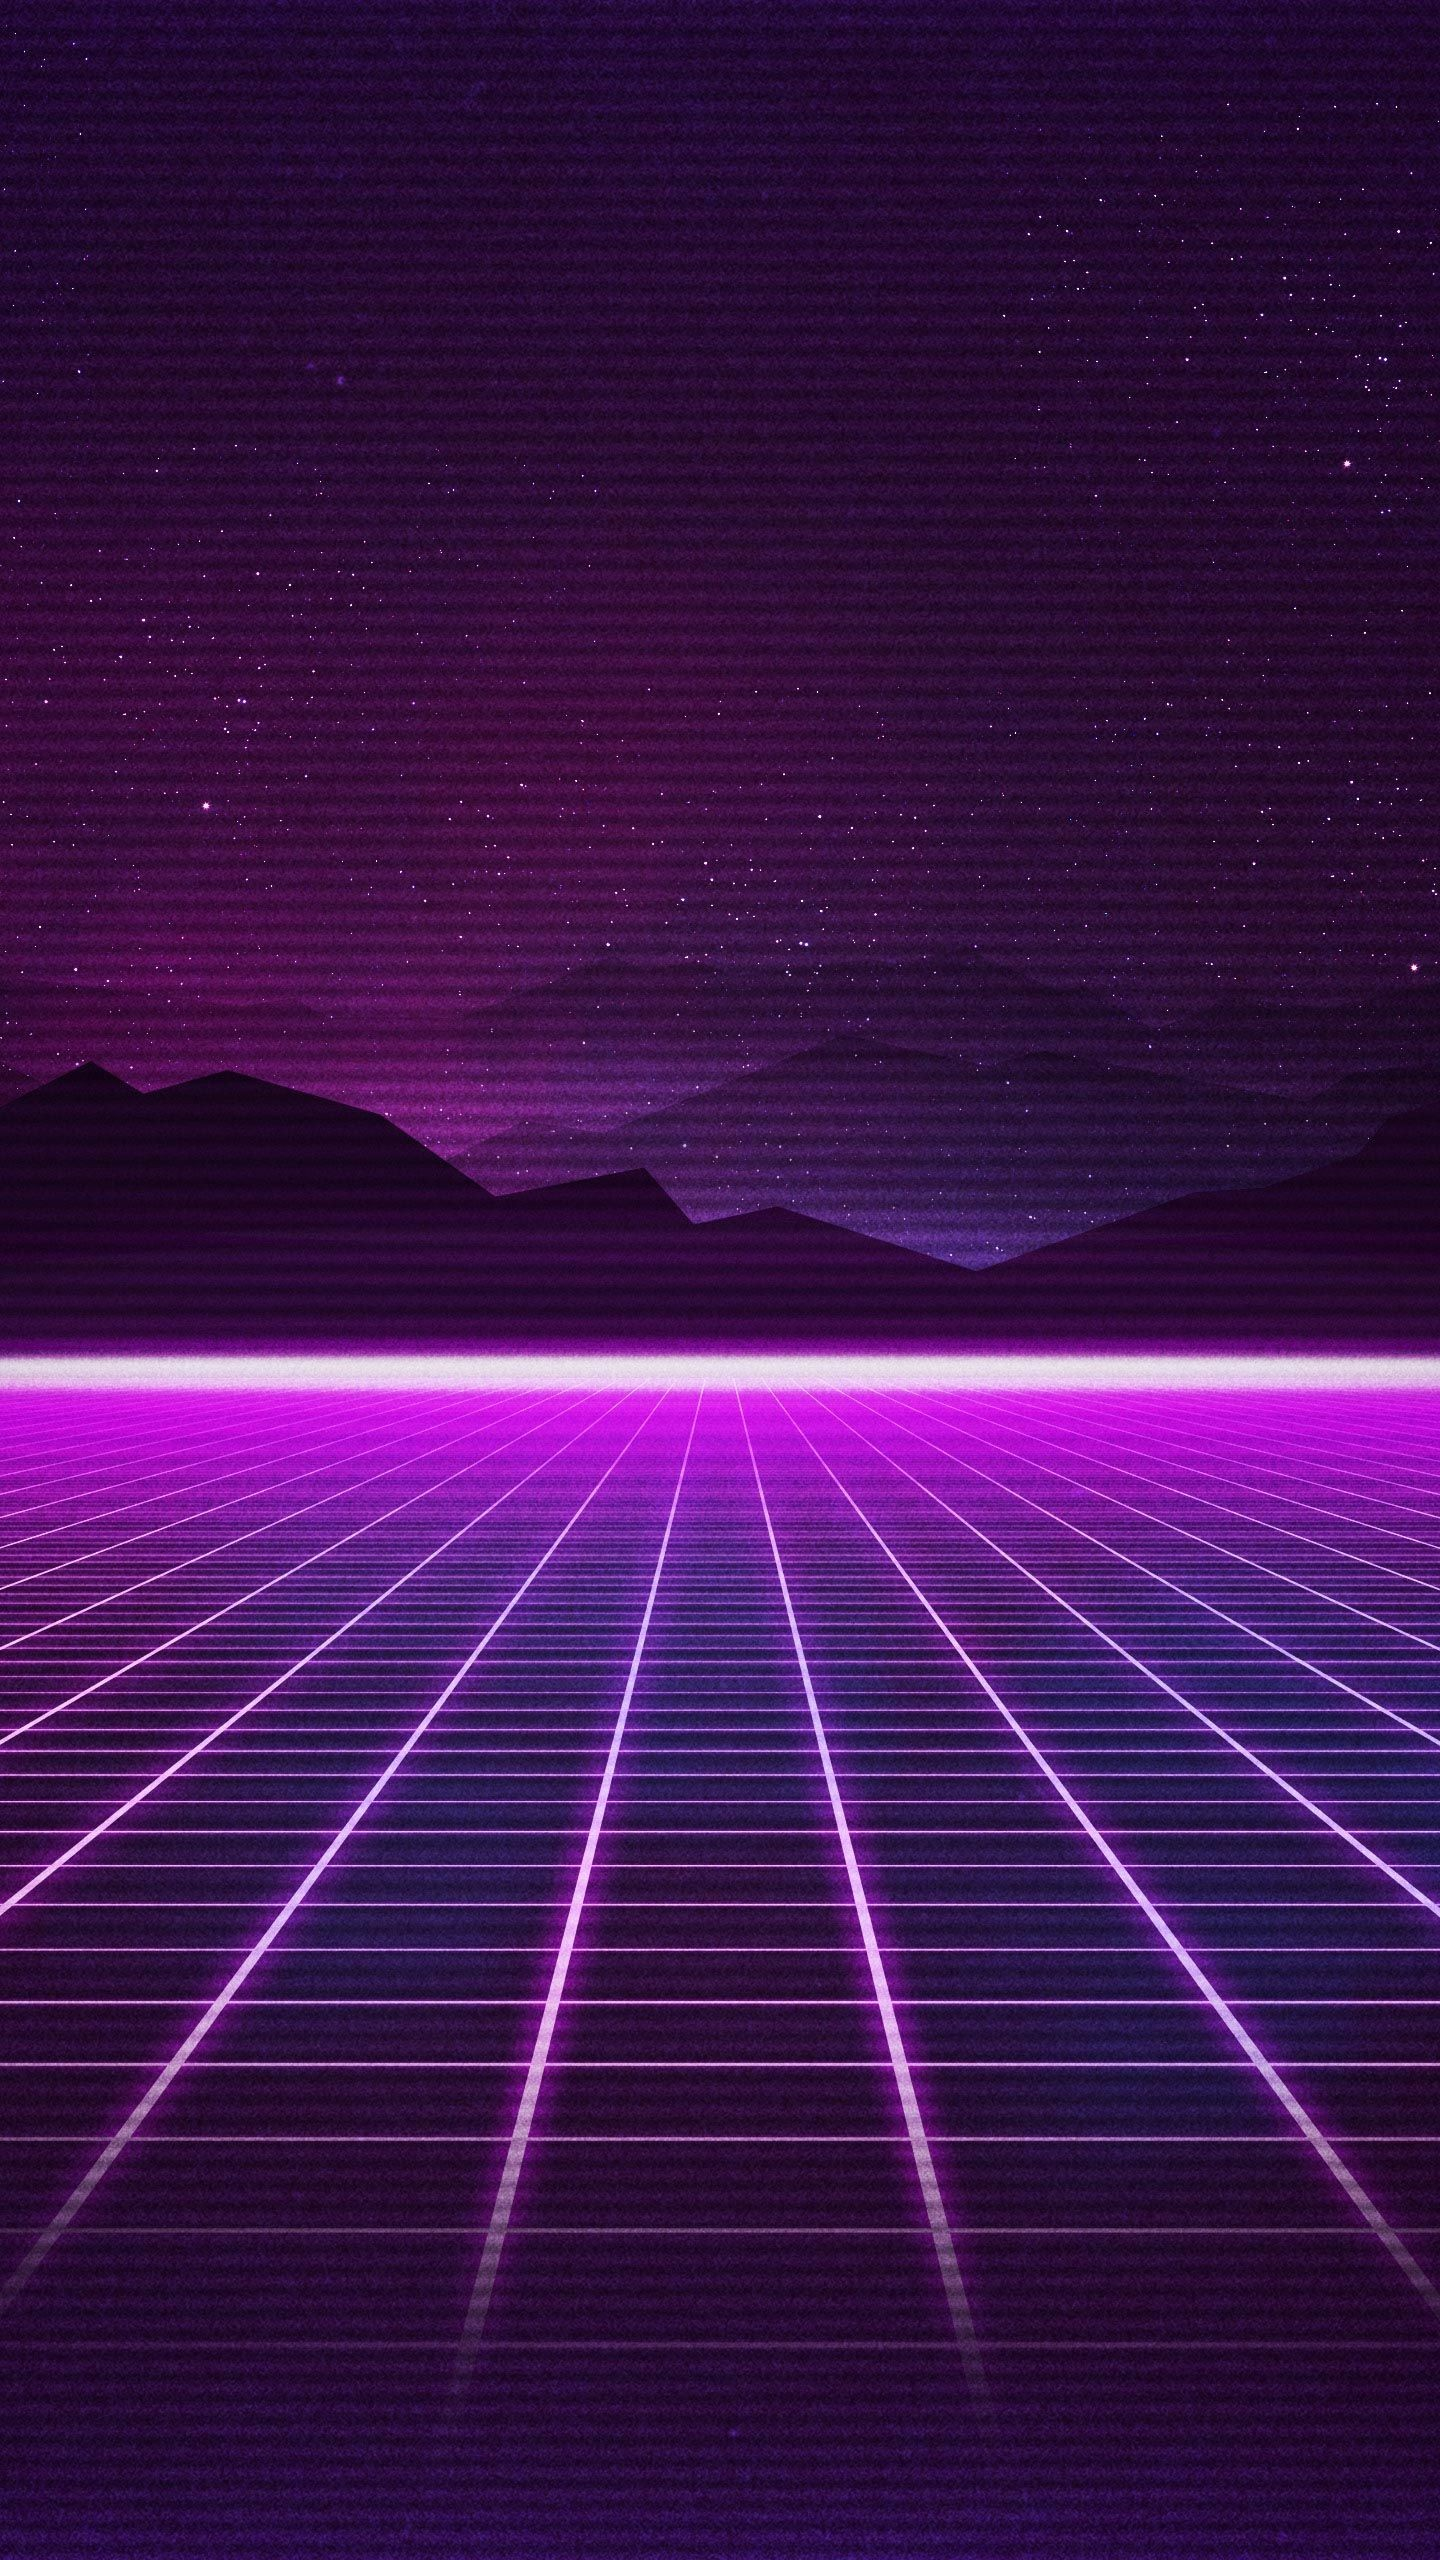 Wallpaper Retrowave Purple Lines 4k Art 18921